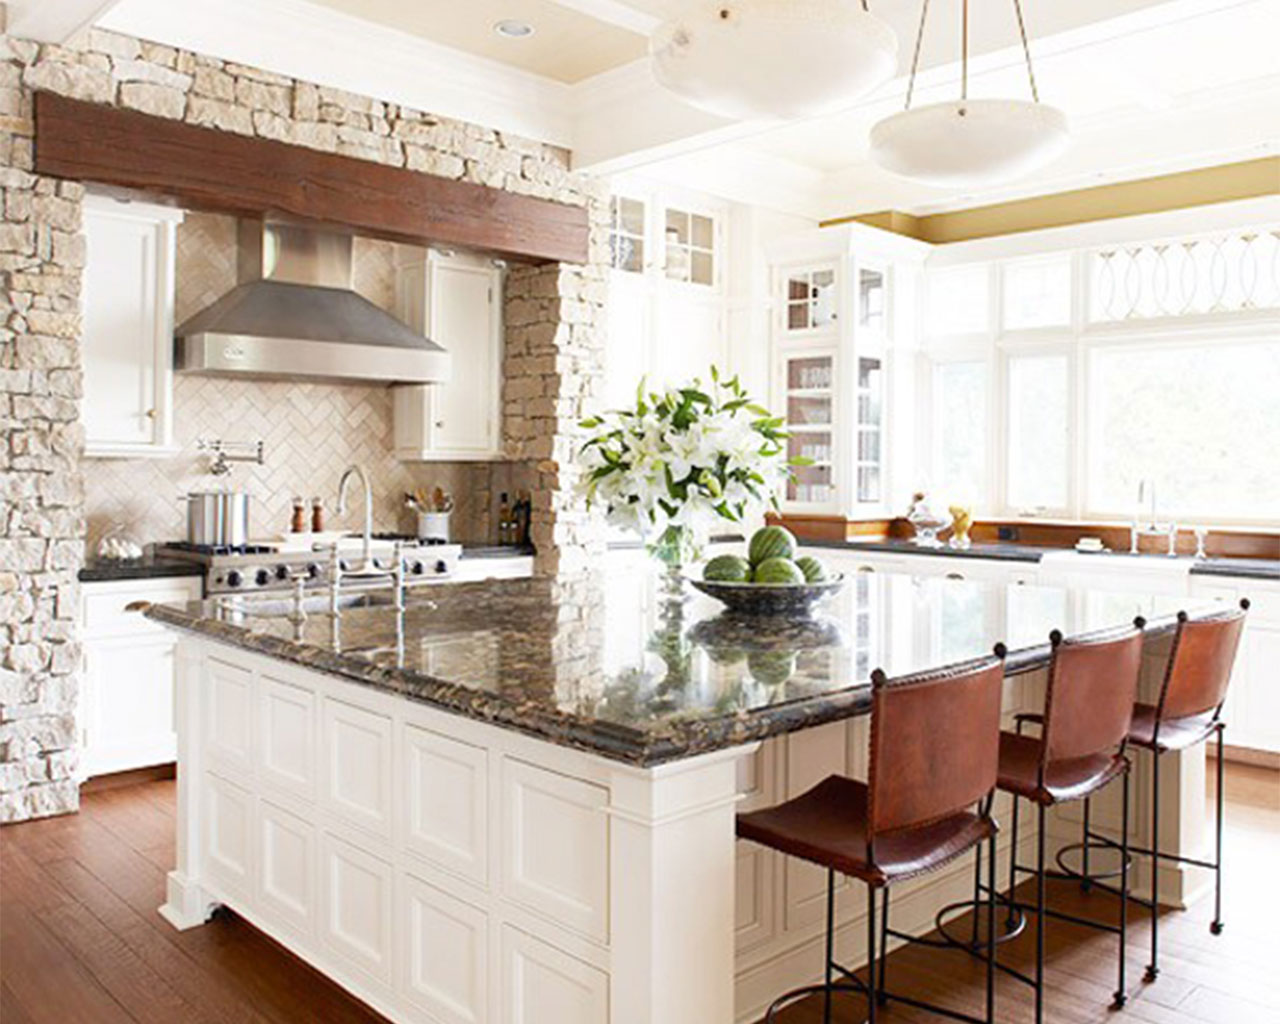 Kitchen trends 2015 loretta j willis designer for Kitchen design with island